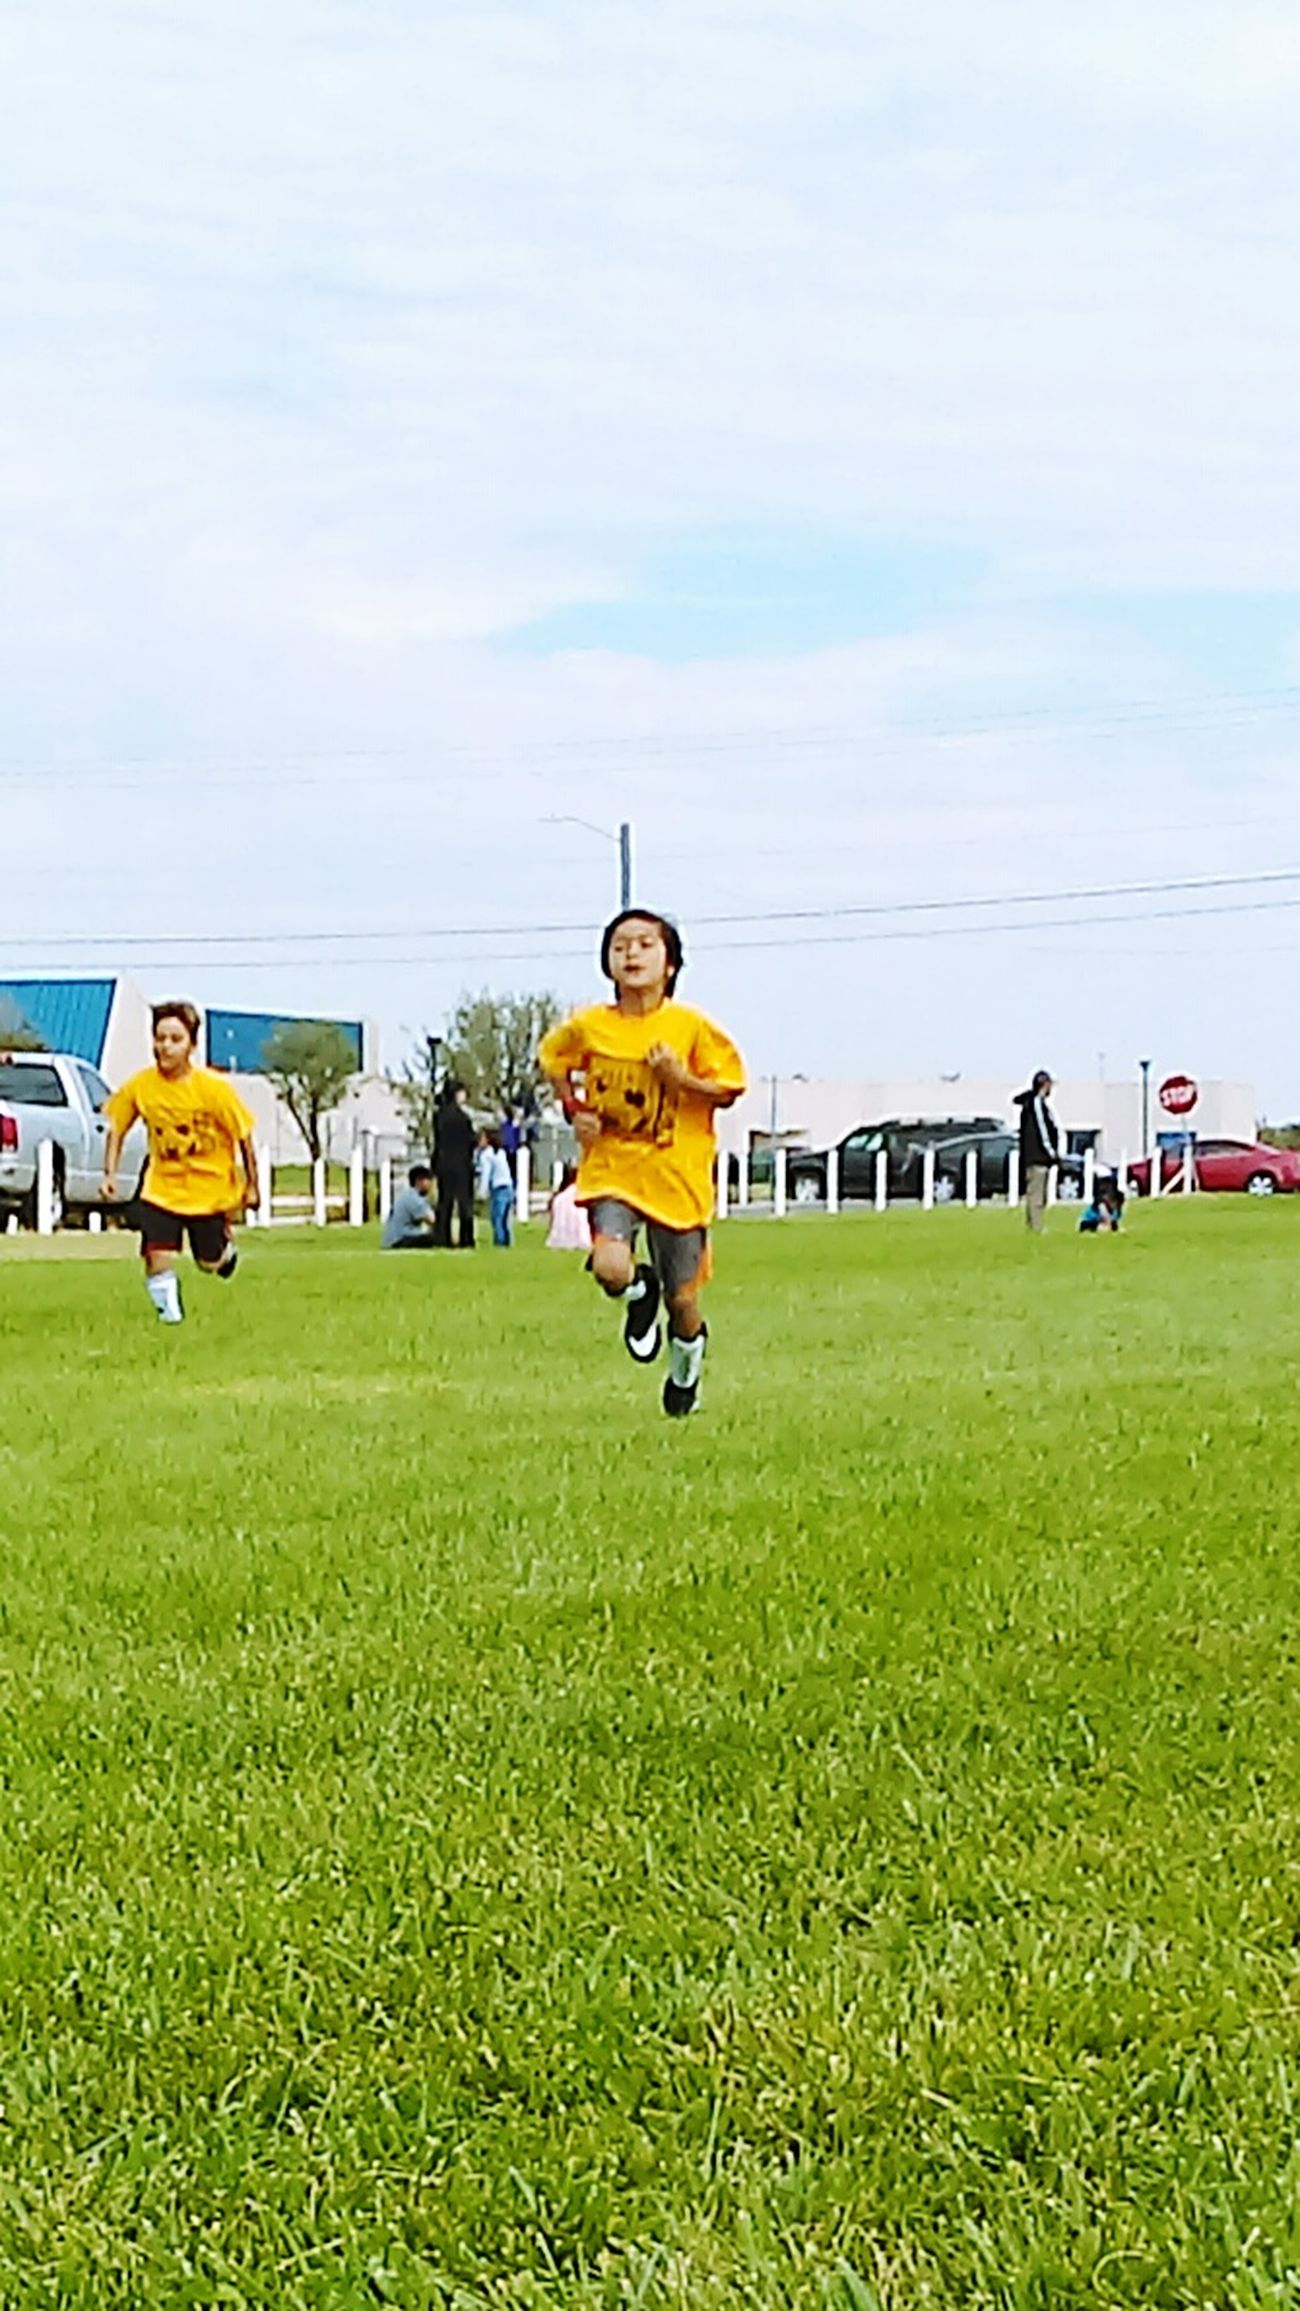 Soccer Soccer Life Soccer Game Nice Day Green Grass Blue Sky Sunshine Warm Ups Laps Thats My Boy !